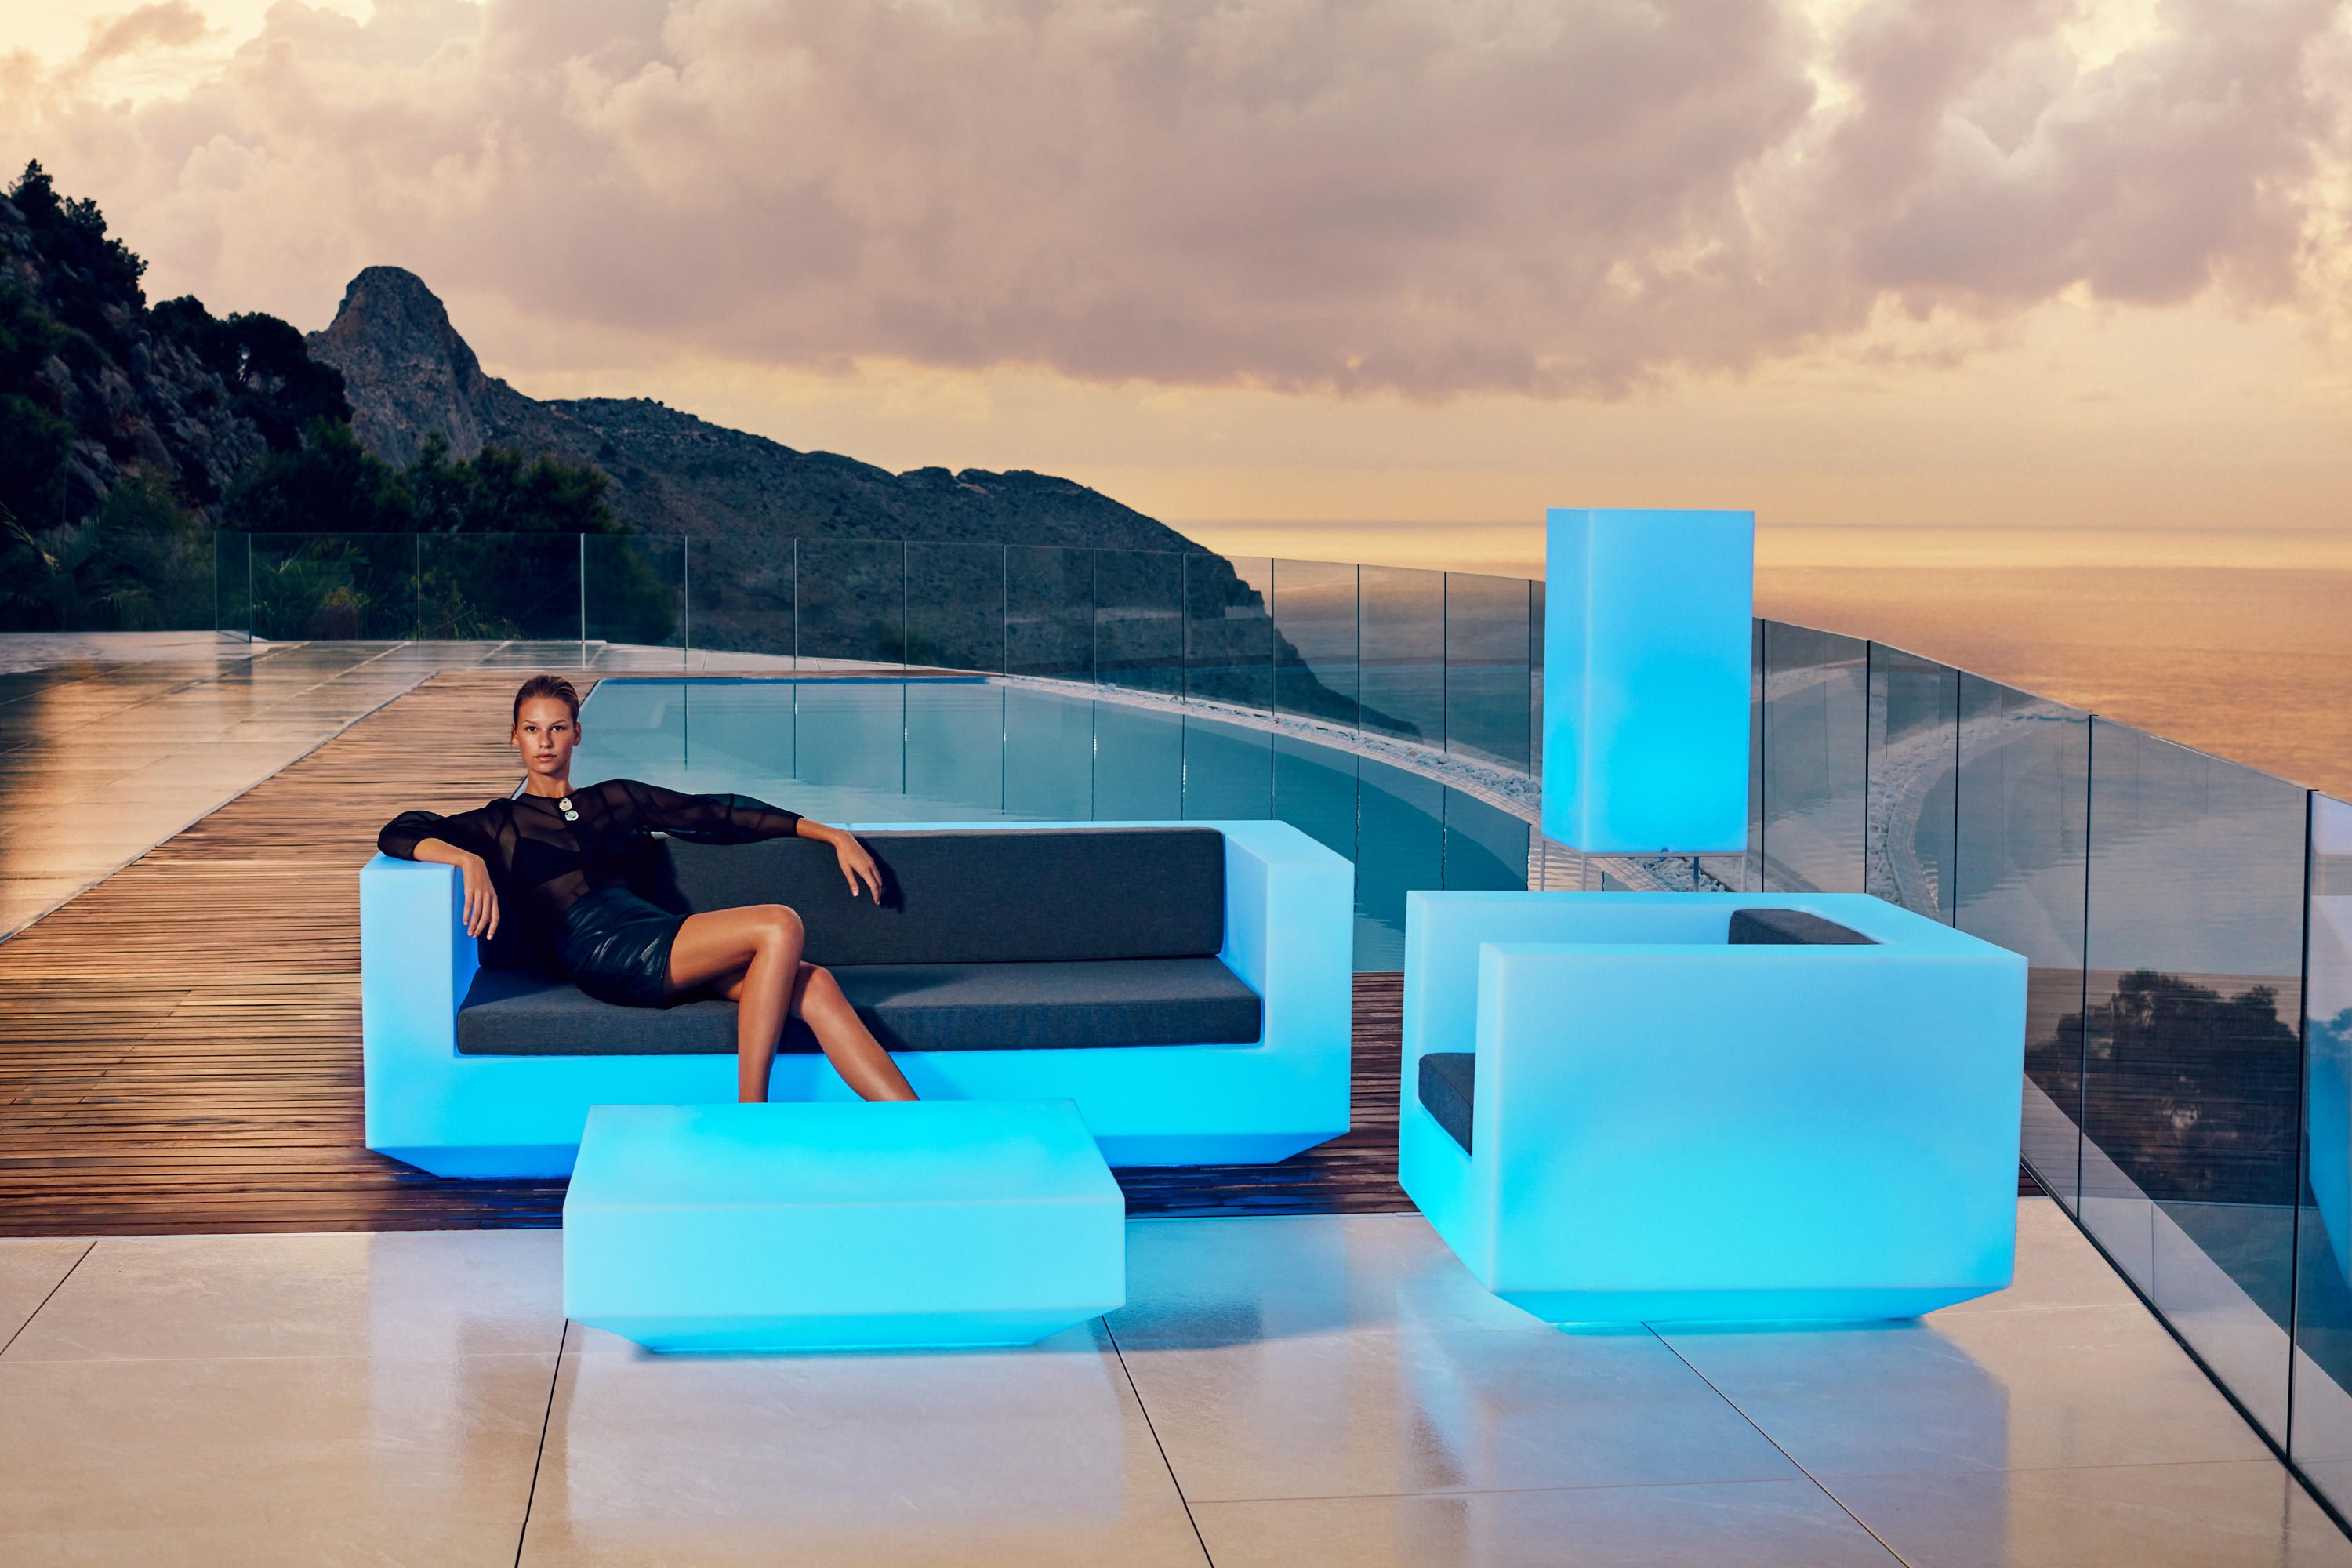 Vela sofa designer garden sofas from vondom ✓ all information ✓ high resolution images ✓ cads ✓ catalogues ✓ contact information ✓ find your